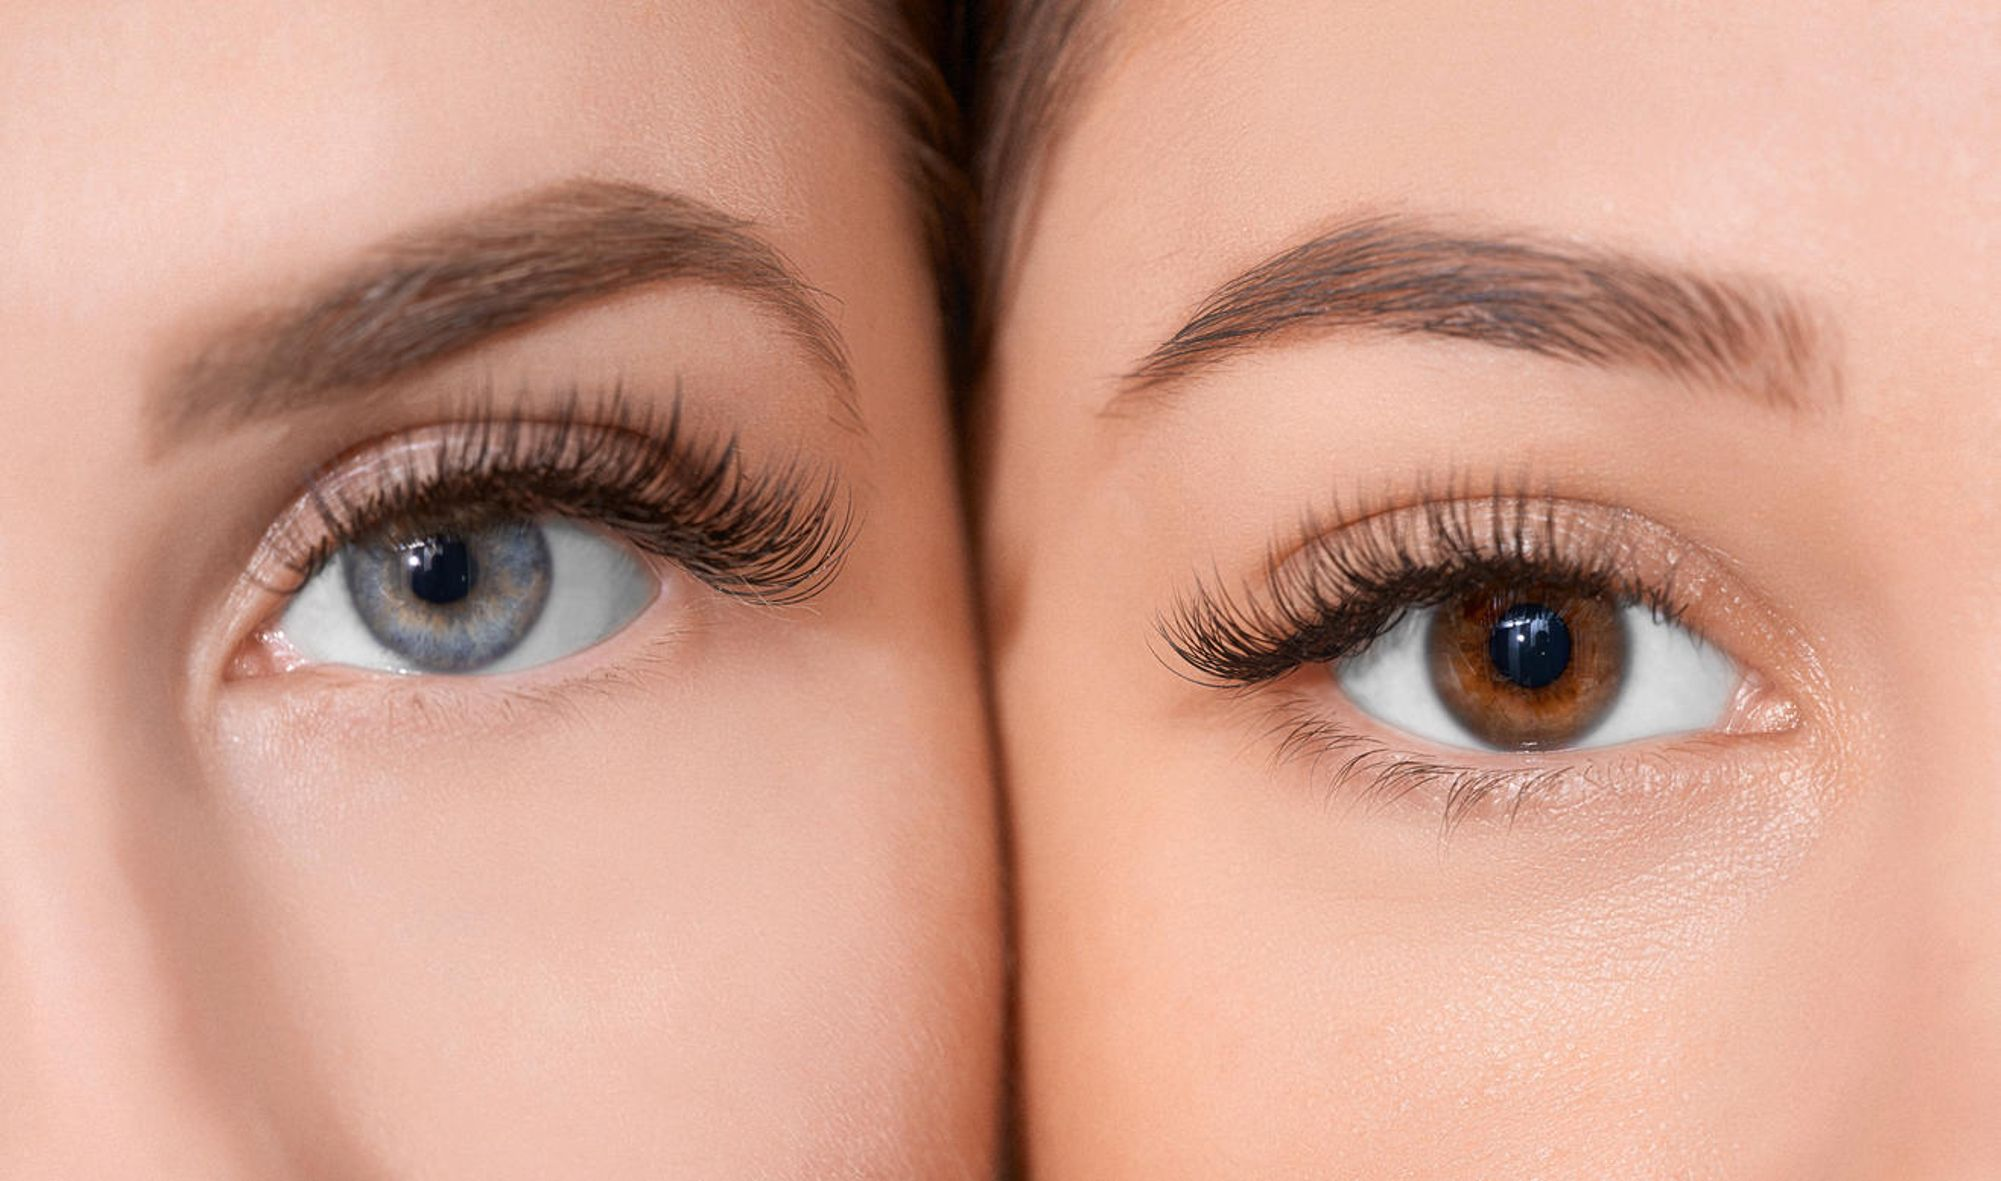 eye brow treatment in chennai